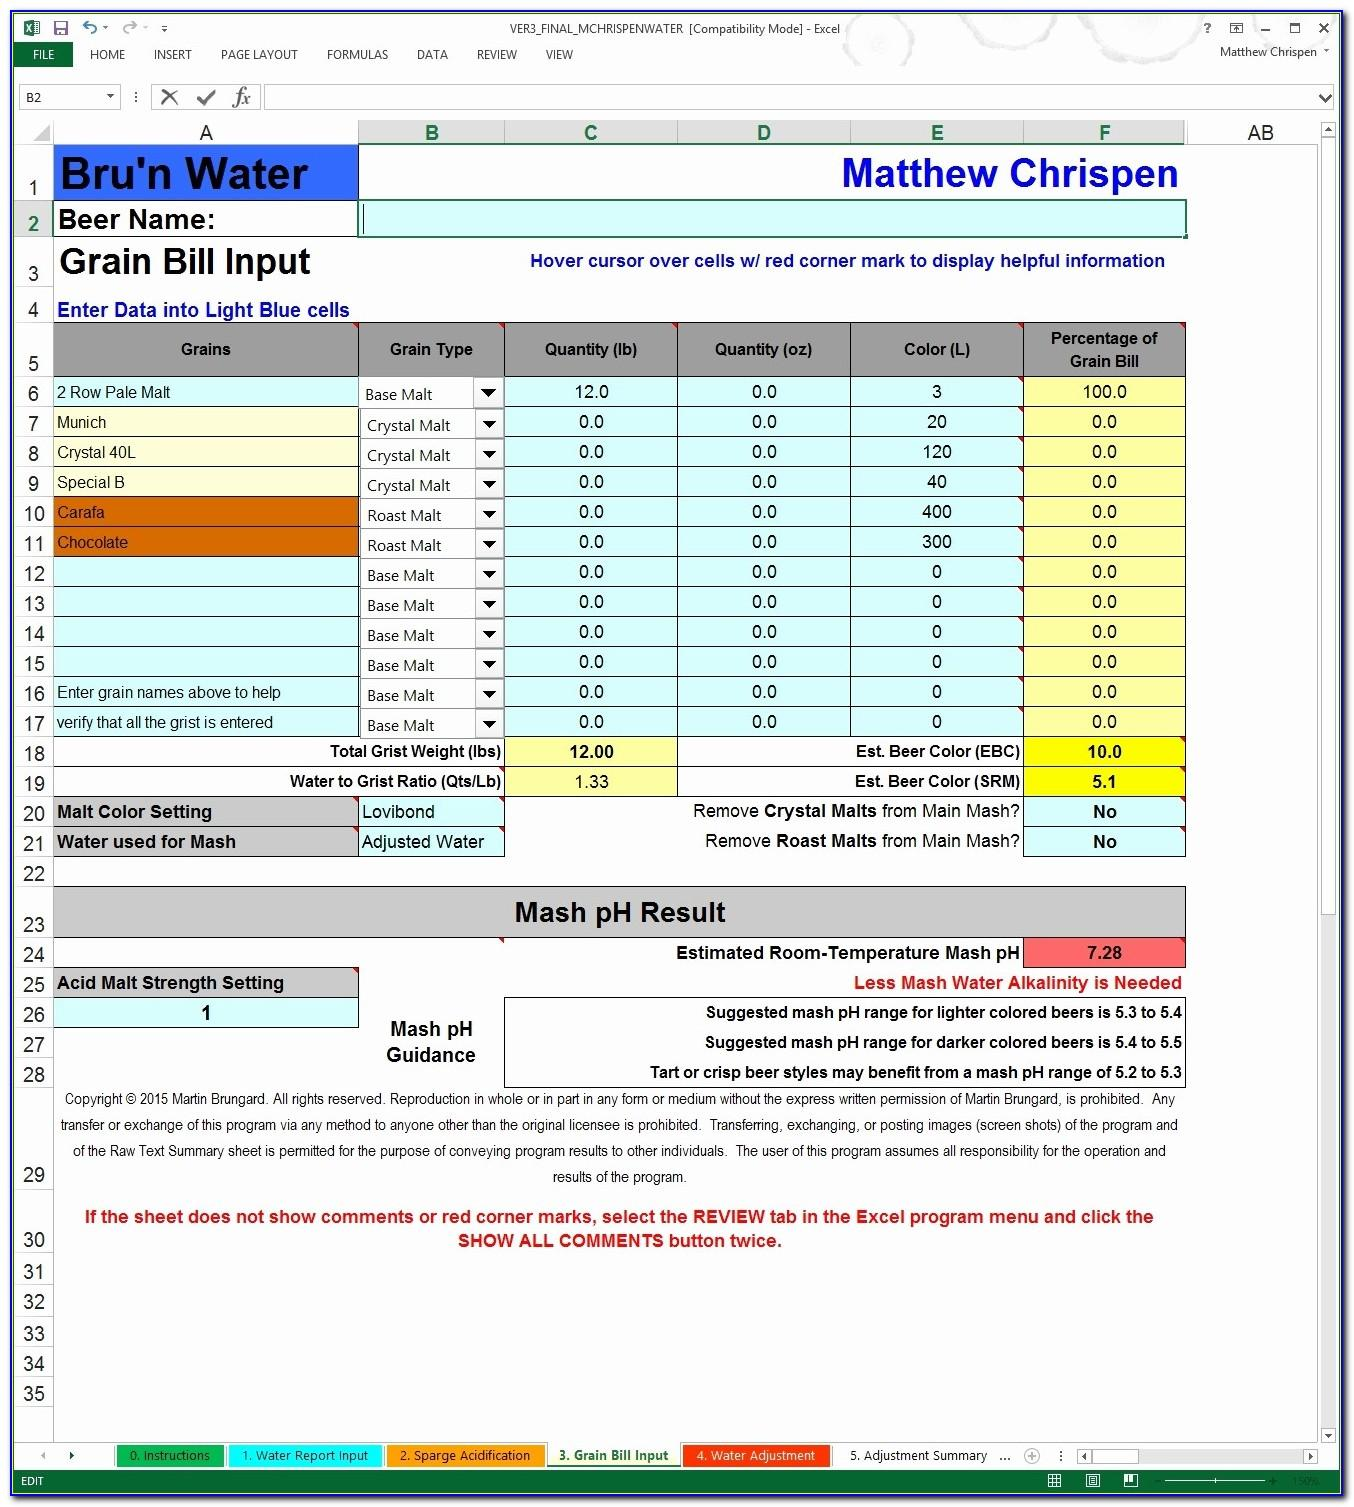 Certificate Of Insurance Tracking Template Excel